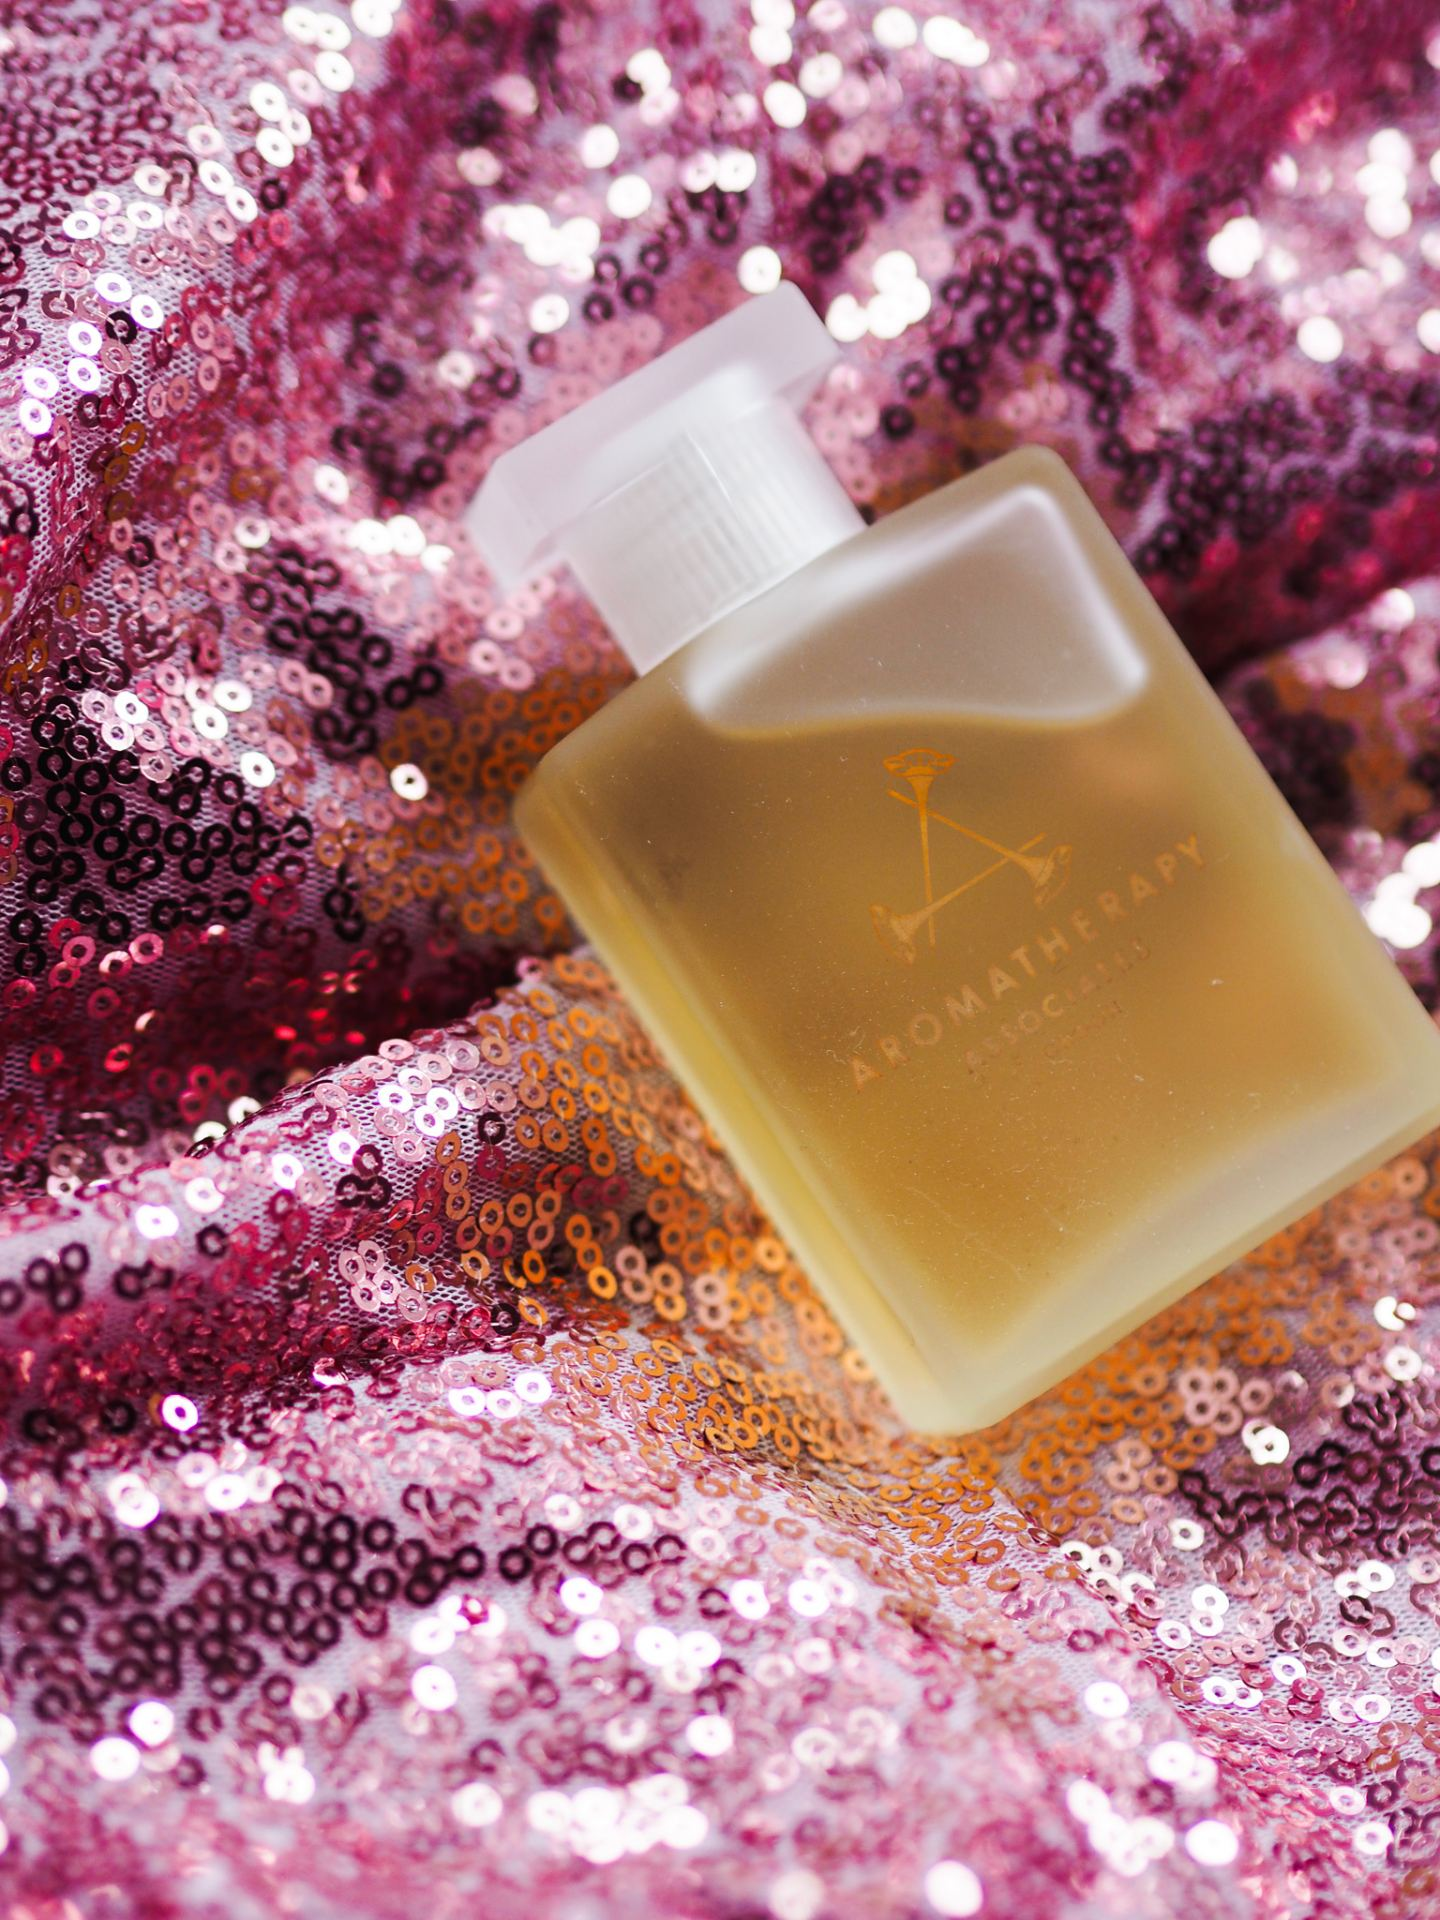 Aromatherapy Associates Bath & Shower Oil